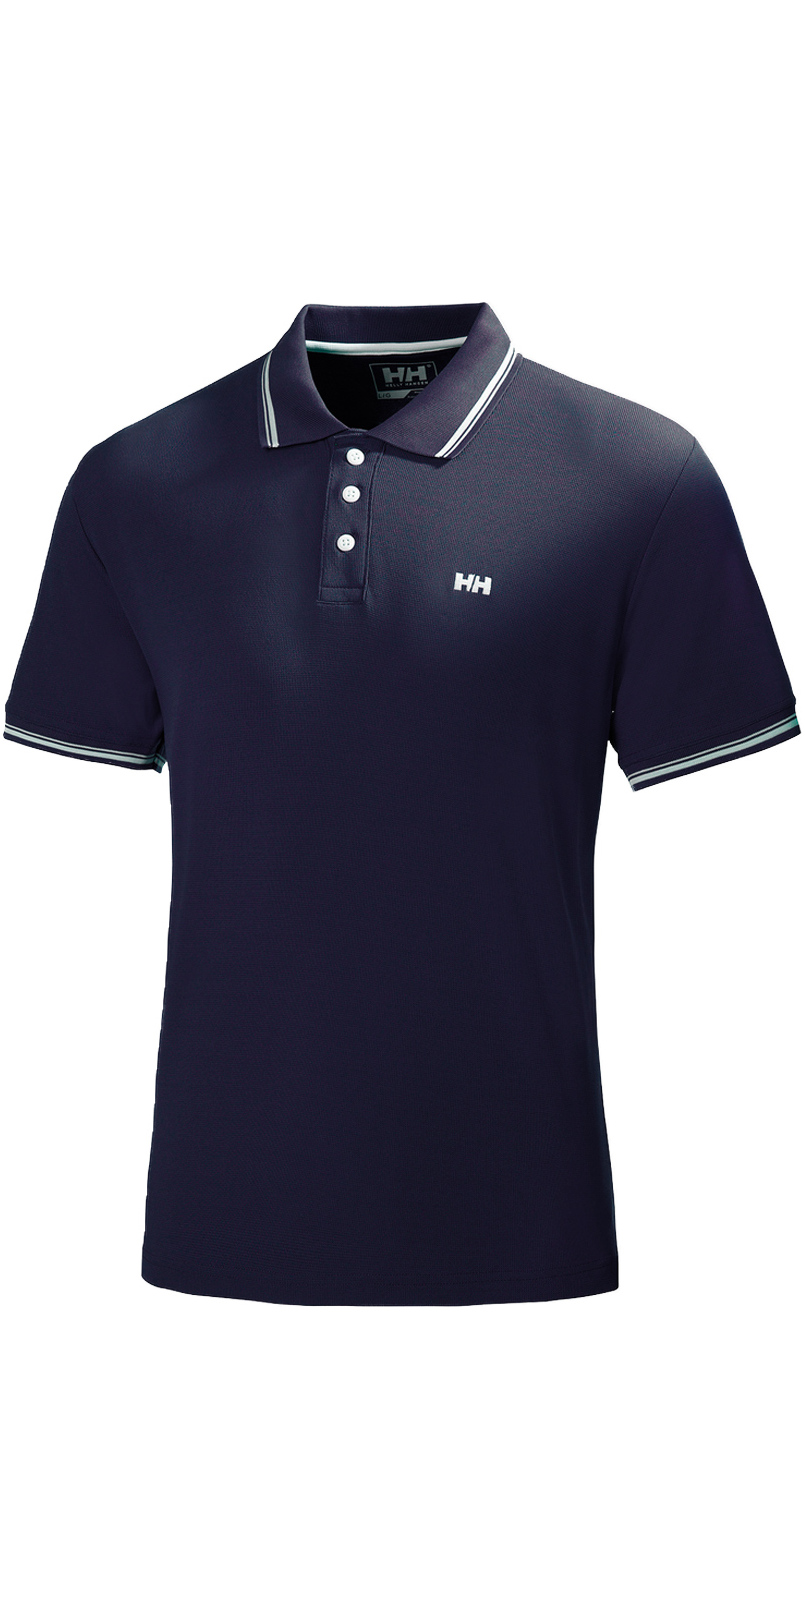 9af4561676 2018 Helly Hansen Kos Short Sleeve Polo in Navy 50565 - 50565 - T ...